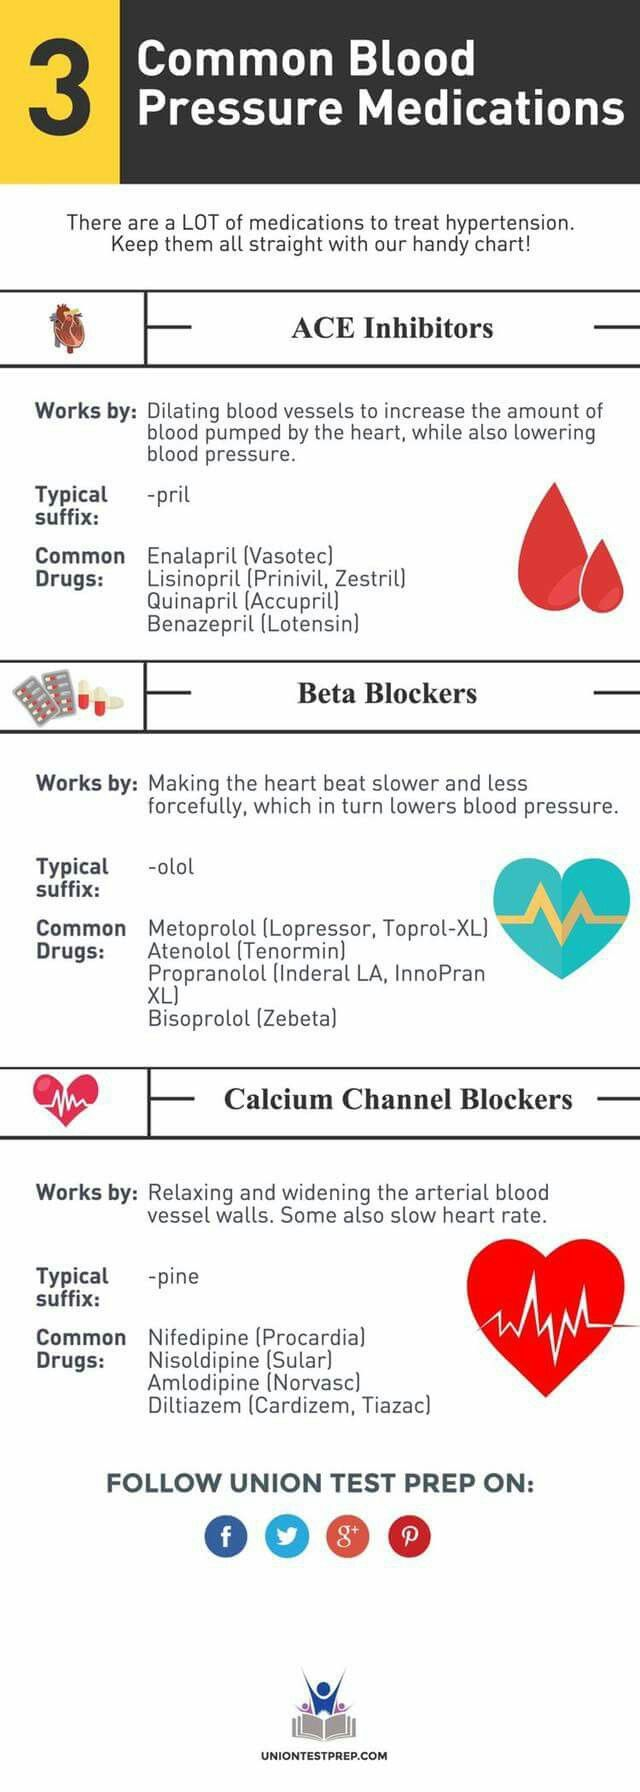 Common bleed pressure medications